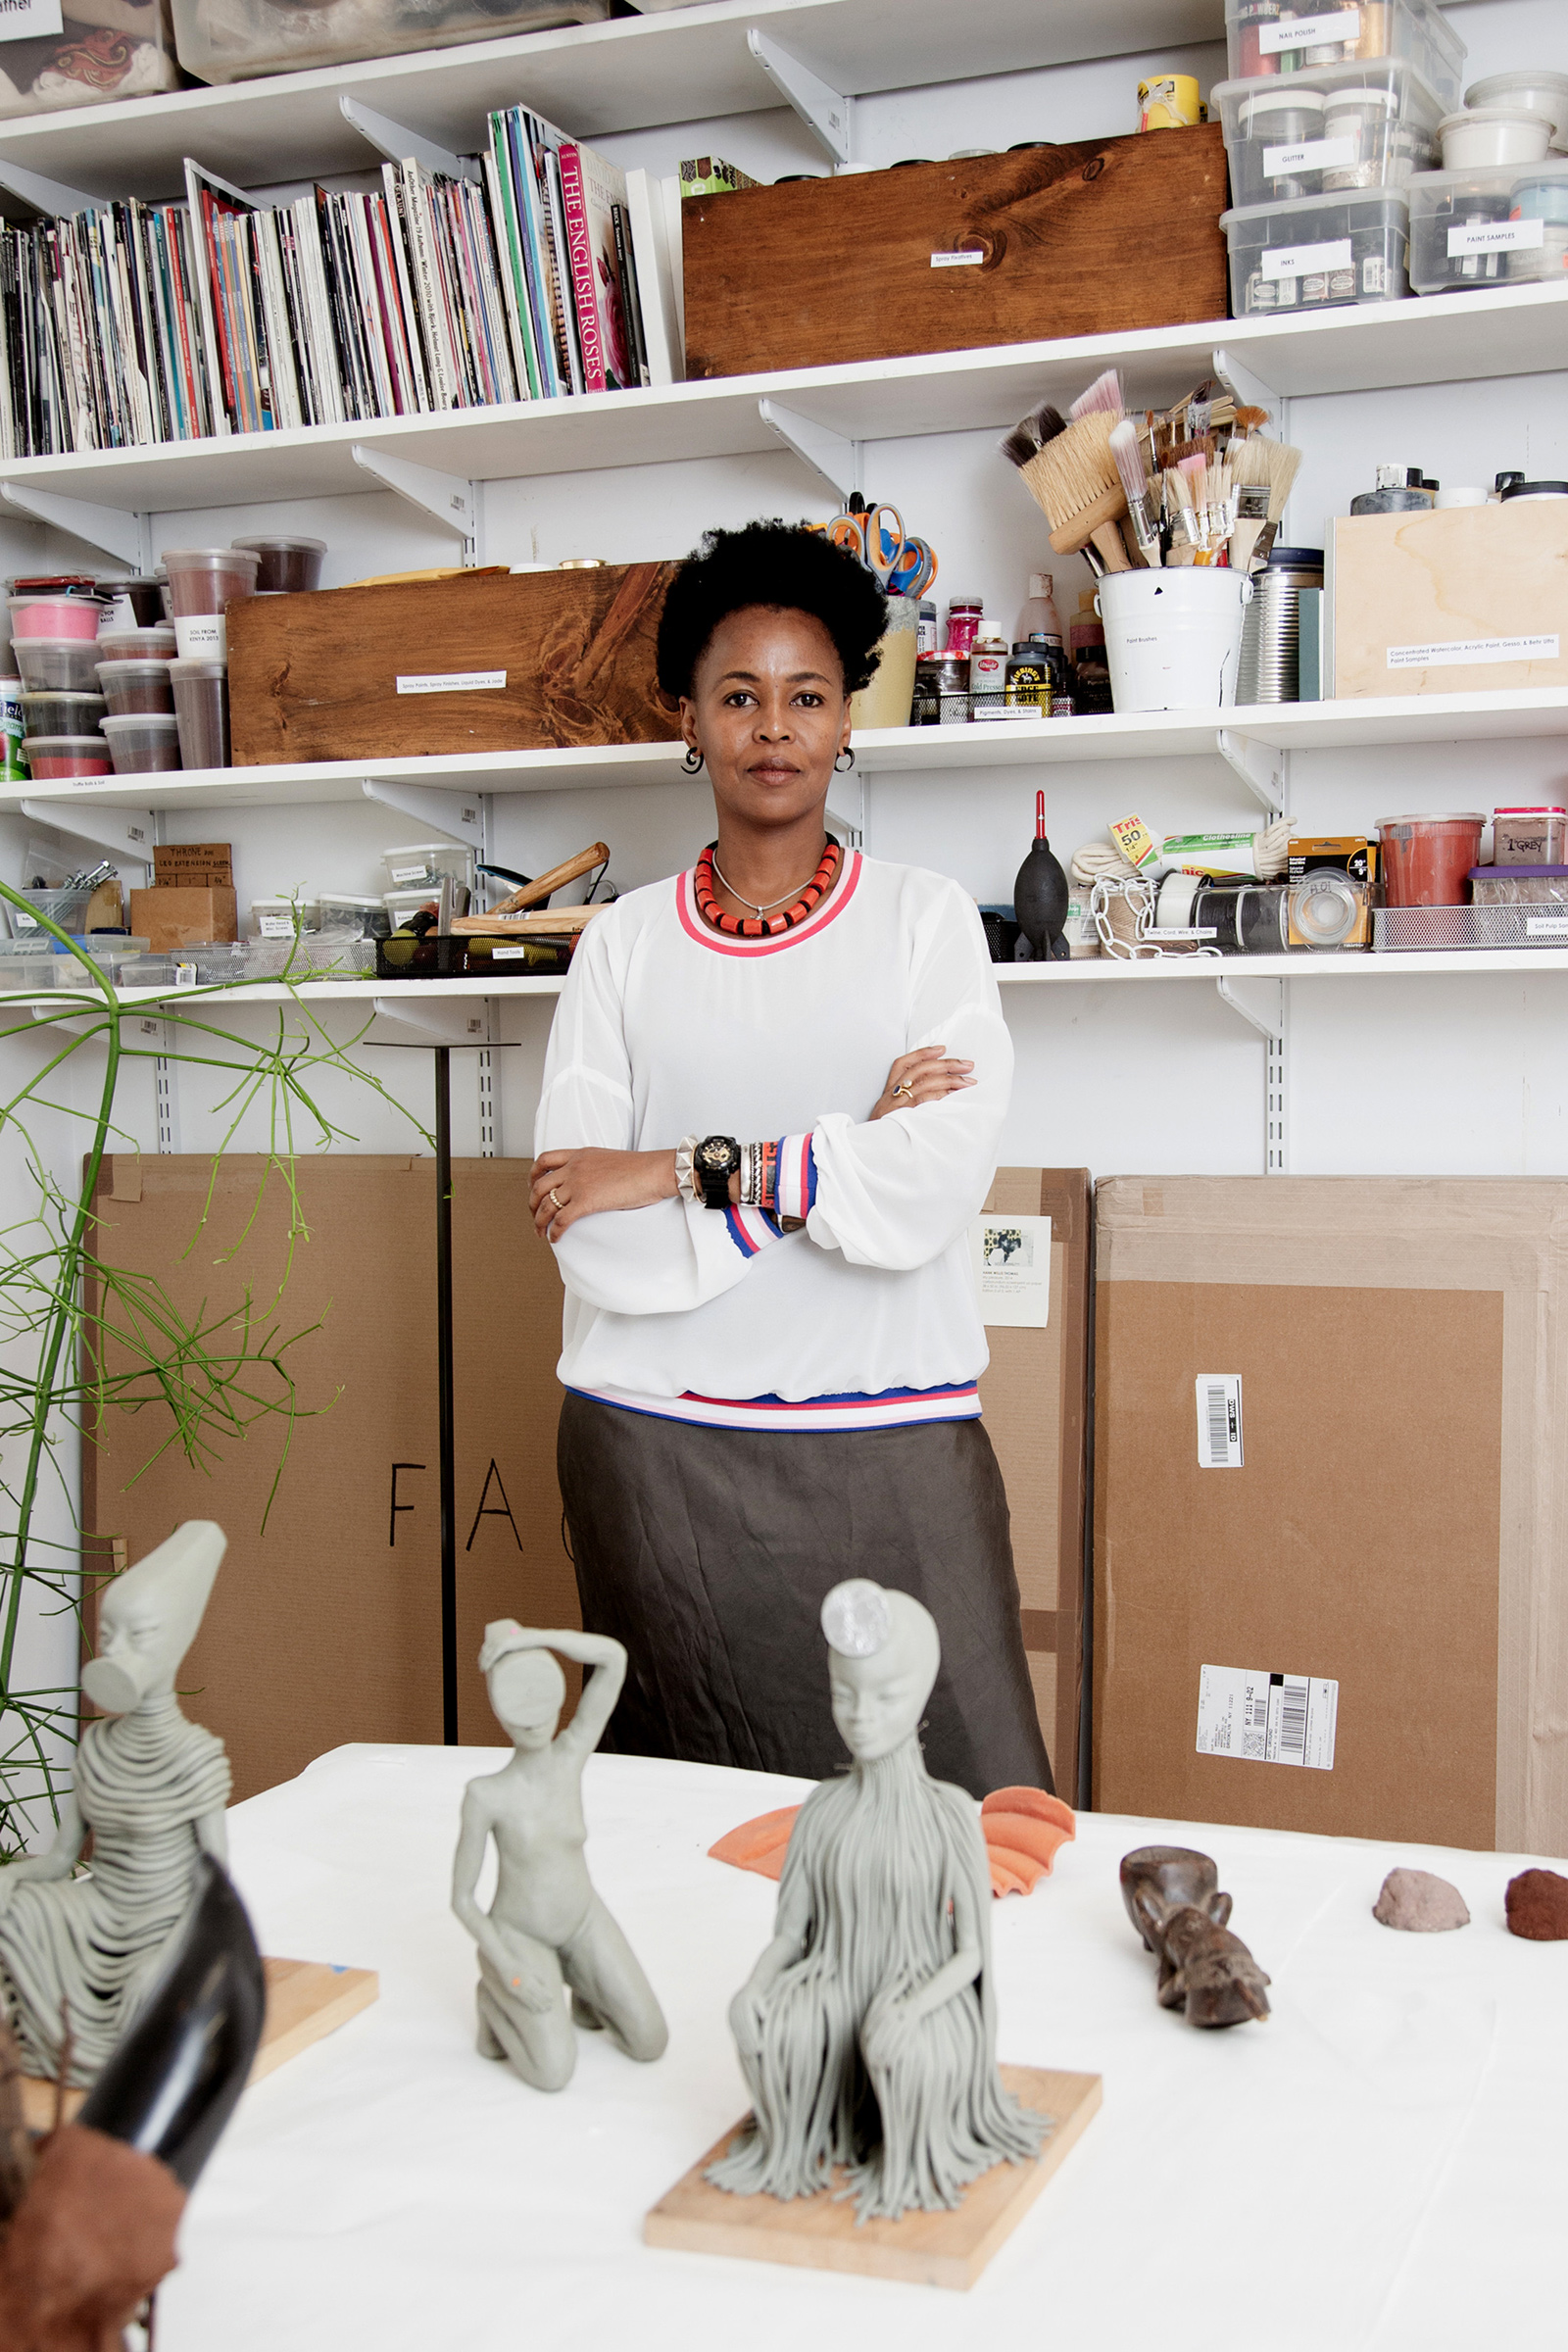 Artist Wangechi Mutu in her Brooklyn studio with models for her sculptures that were installed outside the Metropolitan Museum of Art in New York, Sept. 26, 2019.